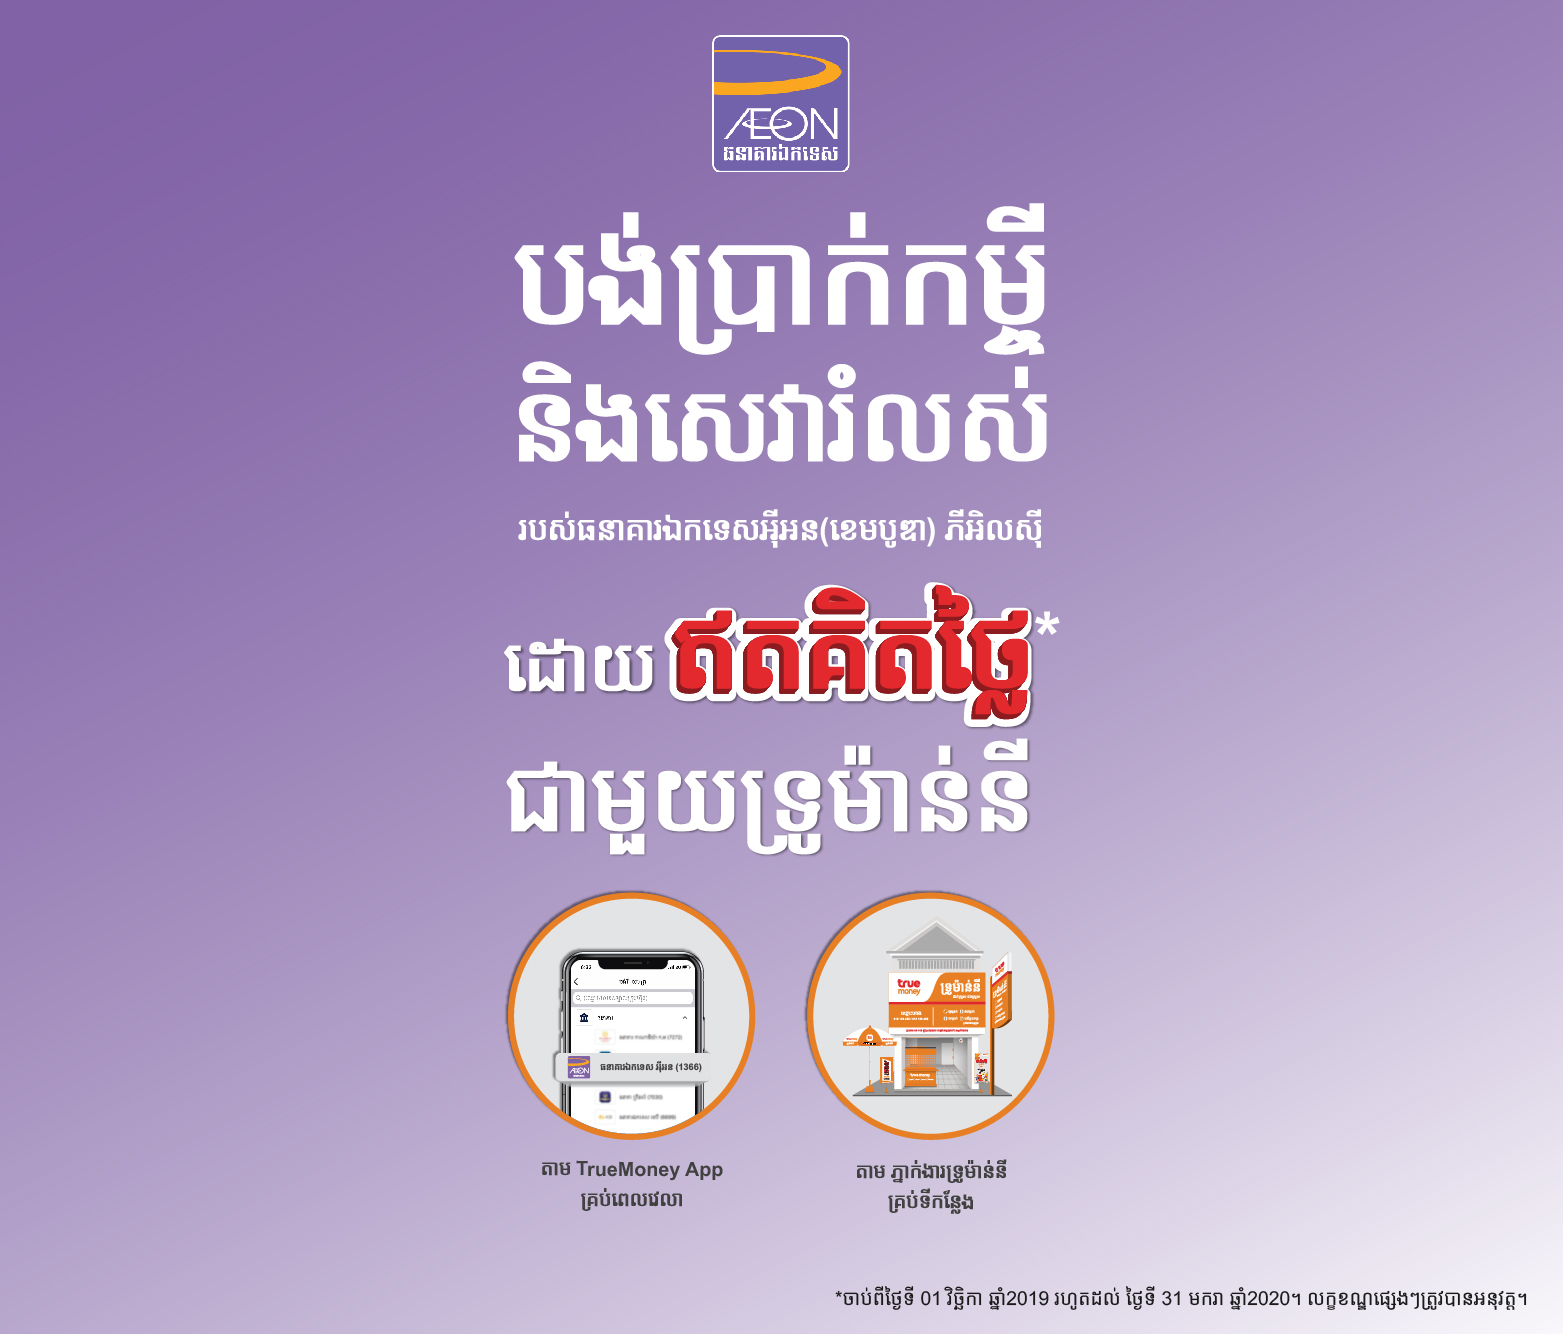 Pay AEON Bill & Loan for FREE